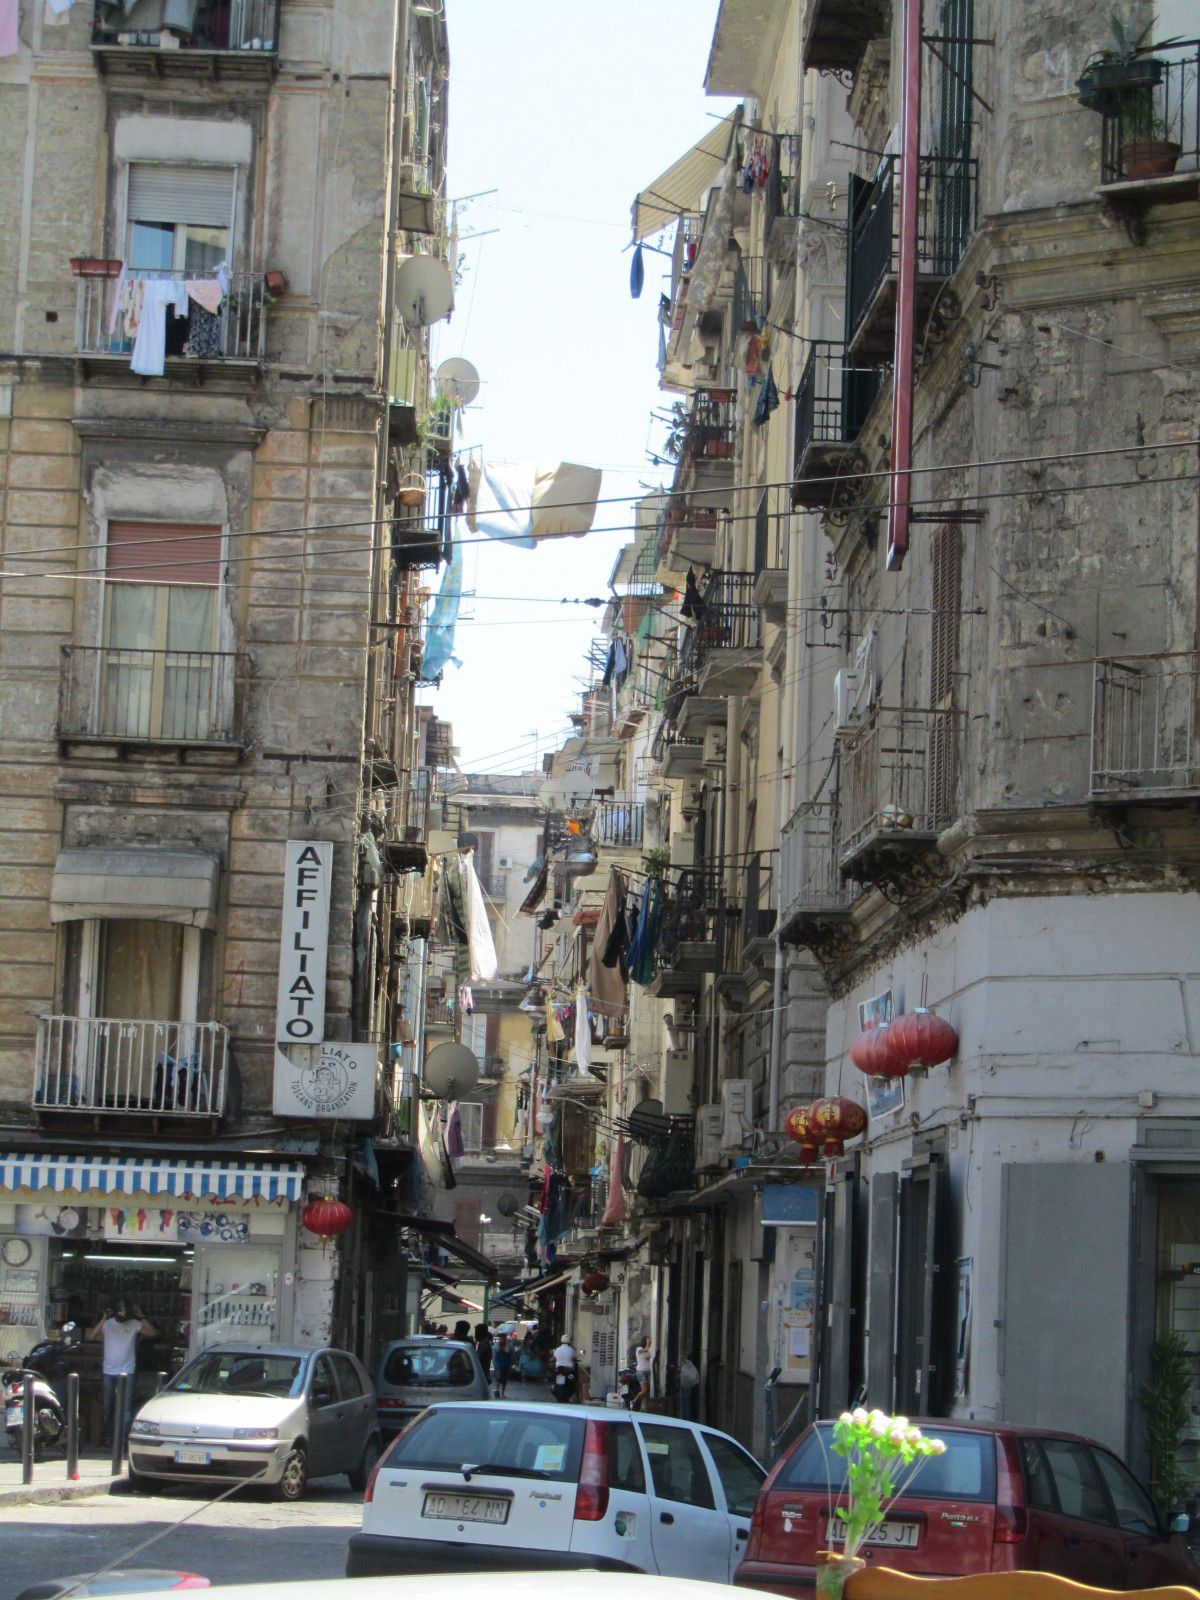 http://idata.over-blog.com/0/32/10/53/villes-geo-urbaine/Naples.jpg